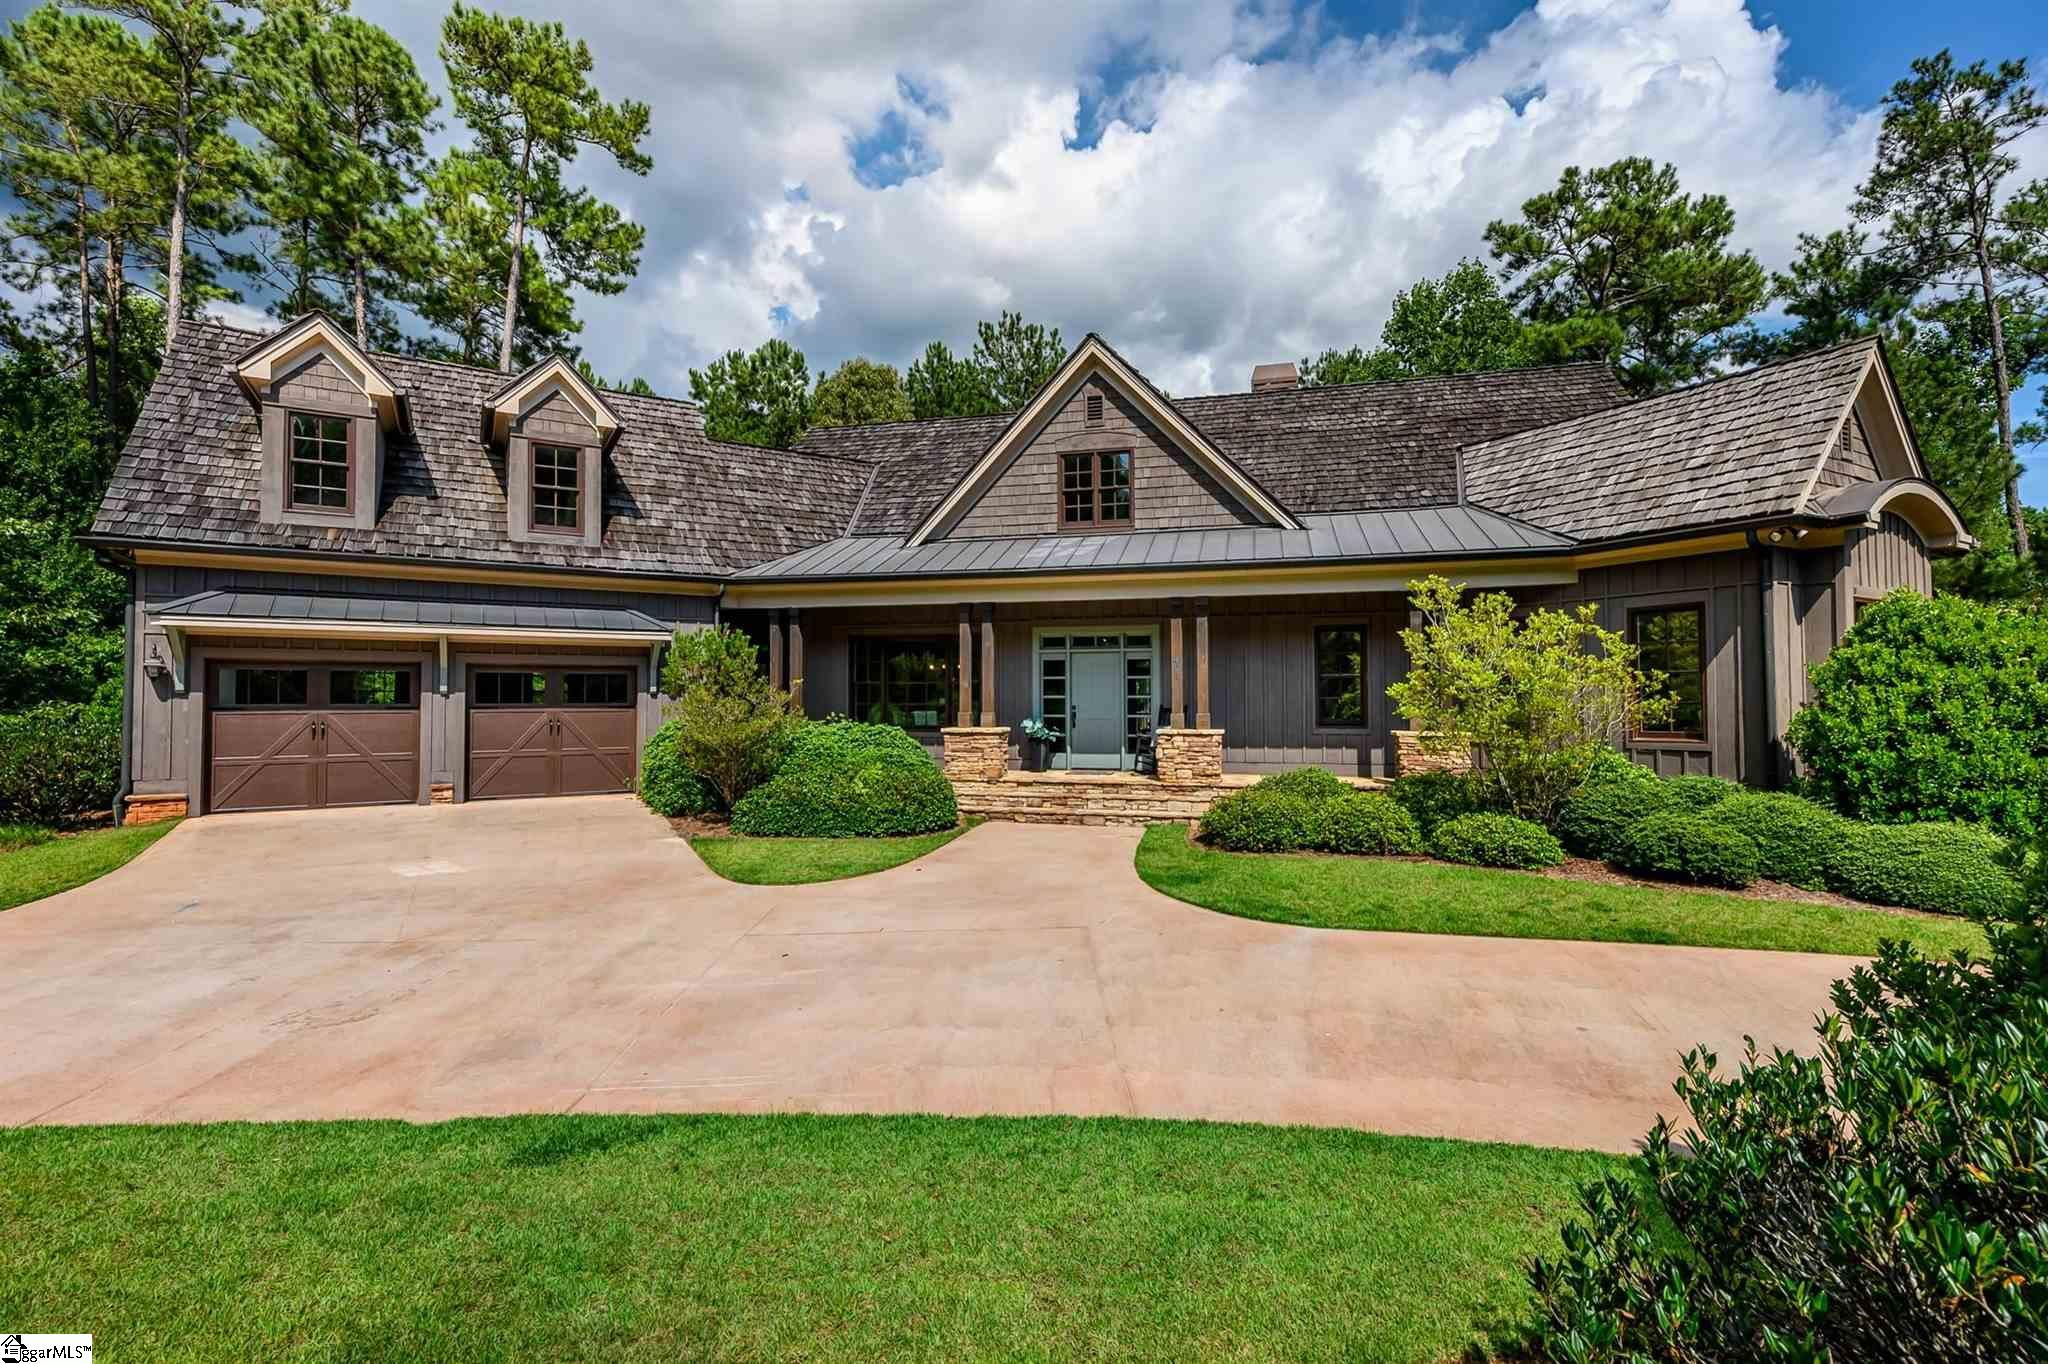 This newly renovated 3 story home sits on the 6th hole of the Jack Nicklaus Signature Golf Course at the Reserve at Lake Keowee. The main level includes a master bedroom, separate dining room, eat in kitchen, office and great room showcases a floor to ceiling stone fireplace and beautiful views of the course. The upper level features a loft, 3 bedrooms, two bathrooms and a bonus room that could be converted into another bedroom or second office. The lower level encompasses a large rec room with built in cabinets flanking the second fireplace, a second kitchen, 2nd master bedroom, 2 bathrooms and workshop. This home's location has an easy golf cart ride to amenities as well as easy access to 133 for quicker trips to neighboring towns. The Reserve at Lake Keowee is a private waterfront golf community that blends natural beauty with world-class amenities. The Reserve offers over $100 million in completed amenities to include: A $2 million renovated Nicklaus golf course completed in September 2020, Orchard House, Village Center with market, Pool Pavilion, Marina, new Fitness Center, new Par 3 course with Mulberry Pavilion & Bar and much more. $60,000 Premier Membership Deposit Required.